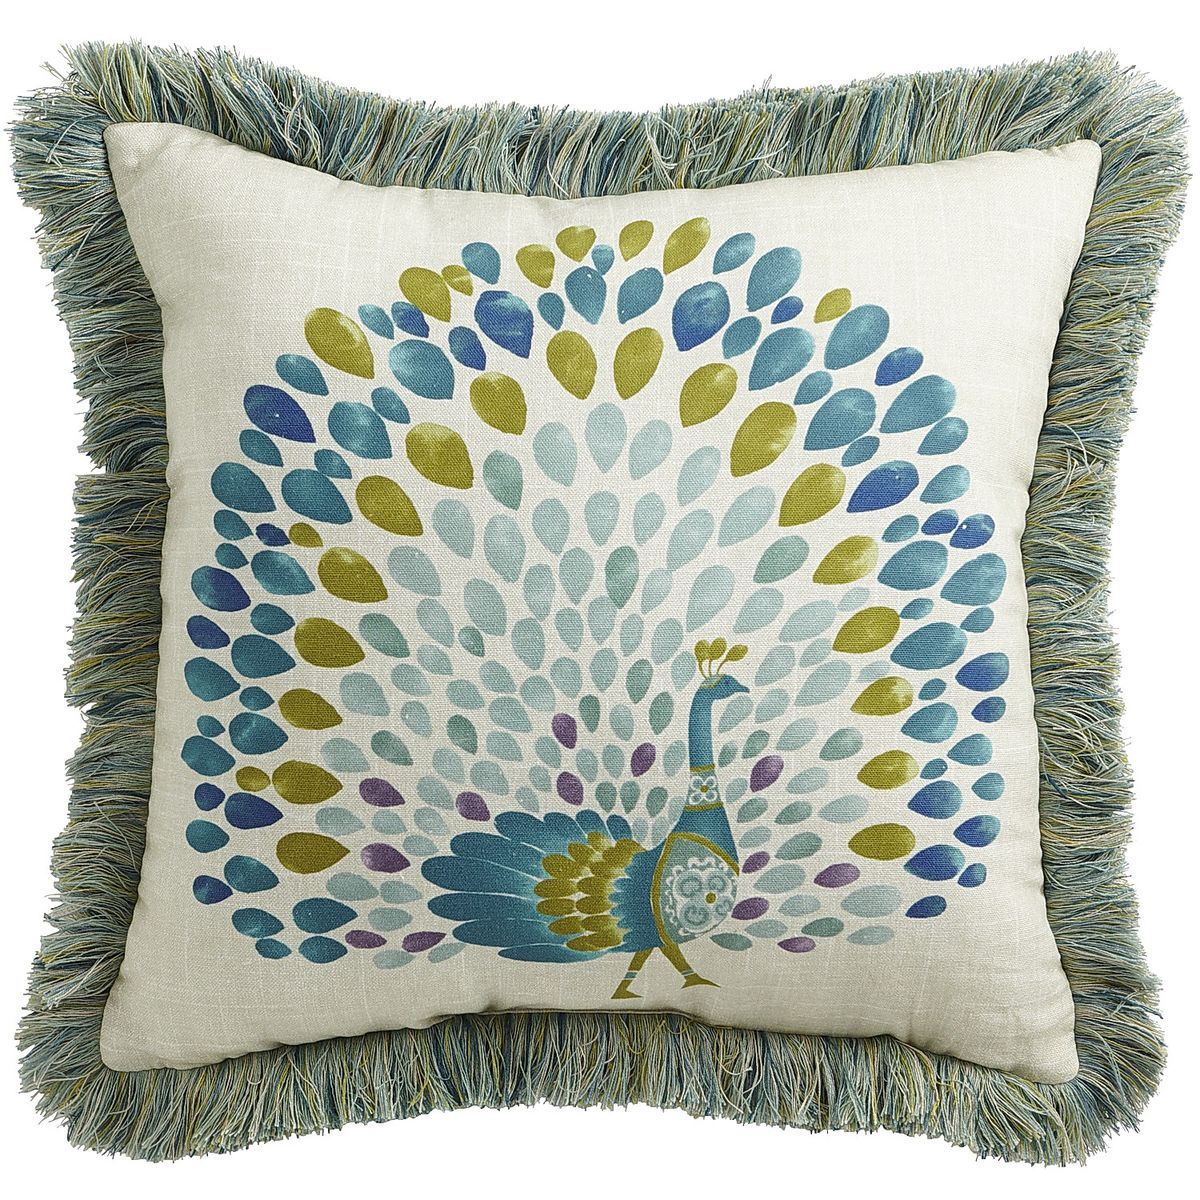 Calliope Peacock Pillow Pier 1 Imports Peacock Perfection